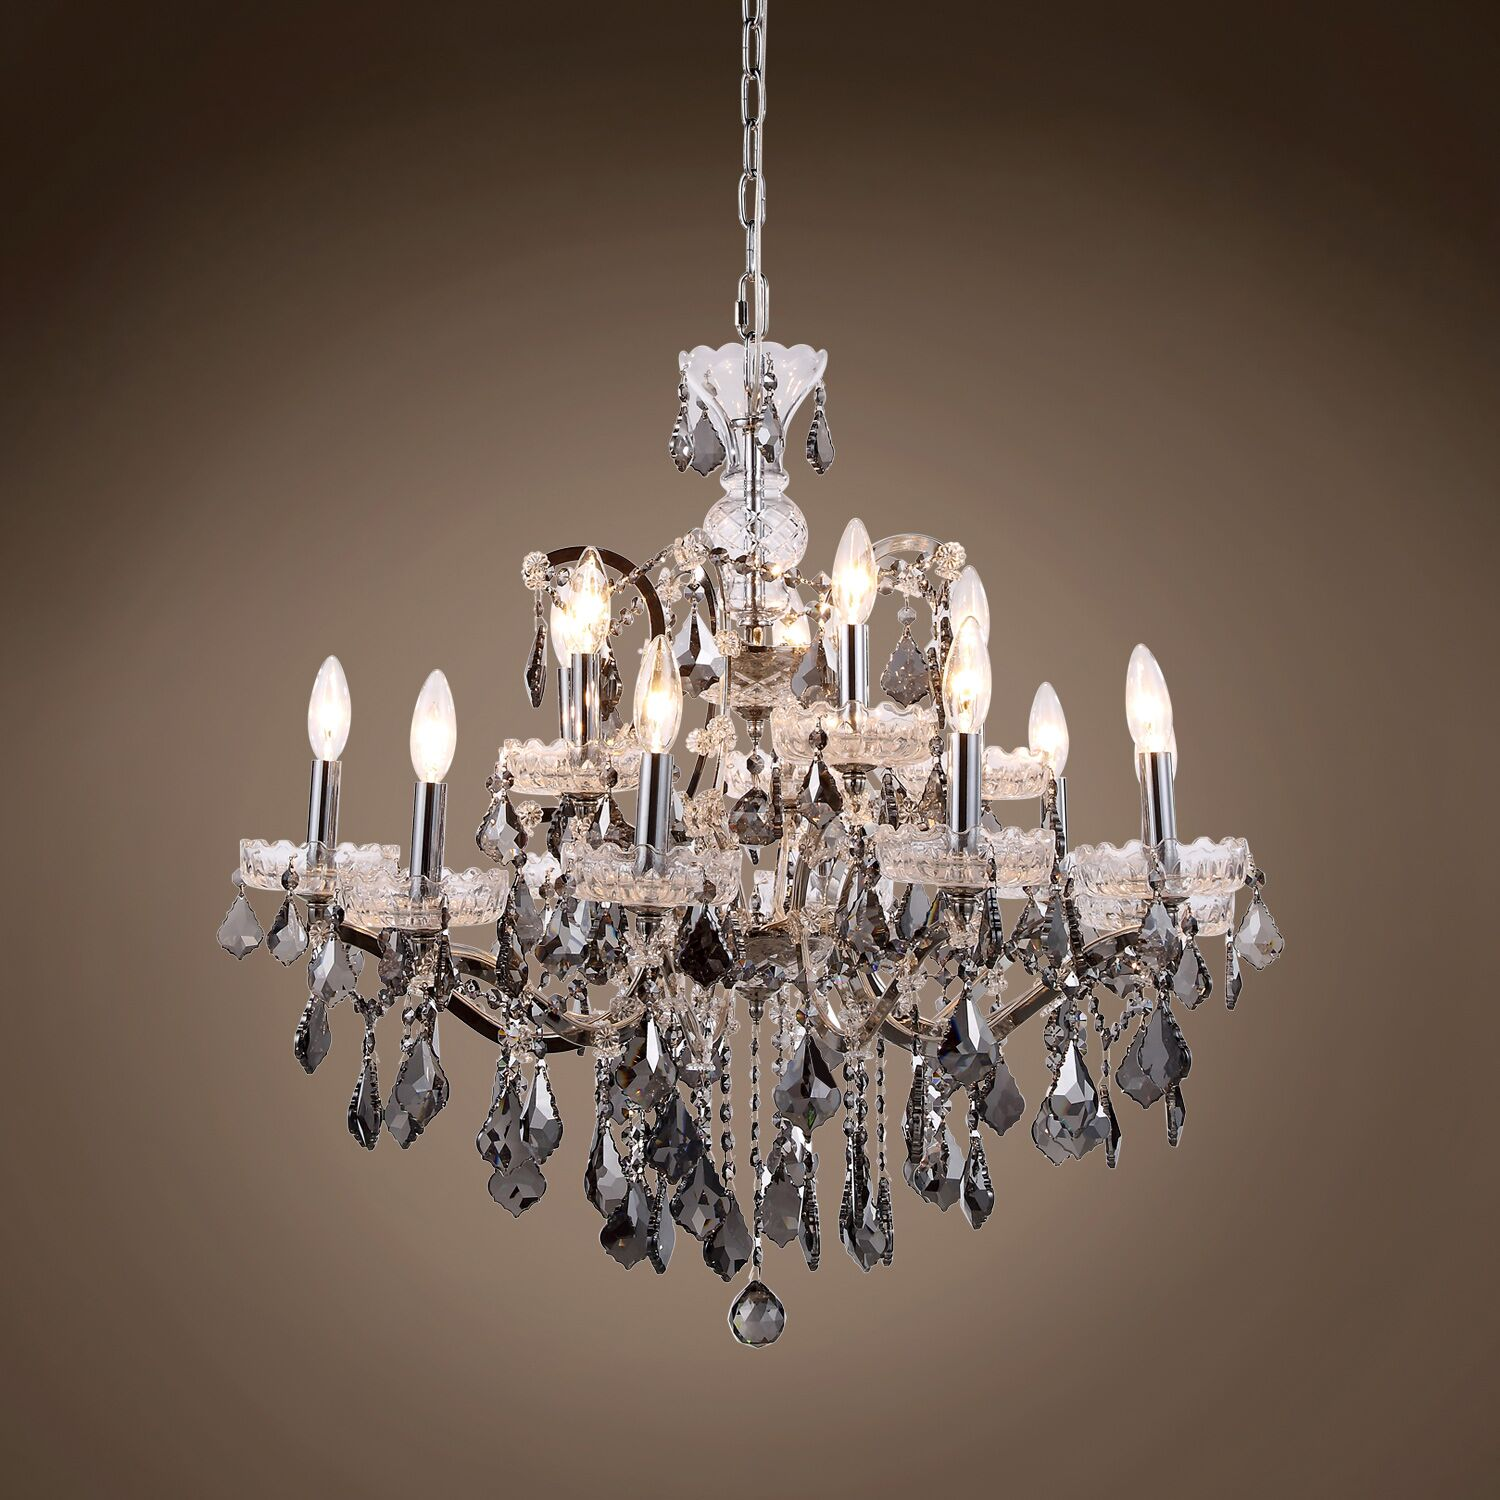 Chantrell 15-Light Chandelier Finish: Polished Nickel, Crystal Color: Smoke